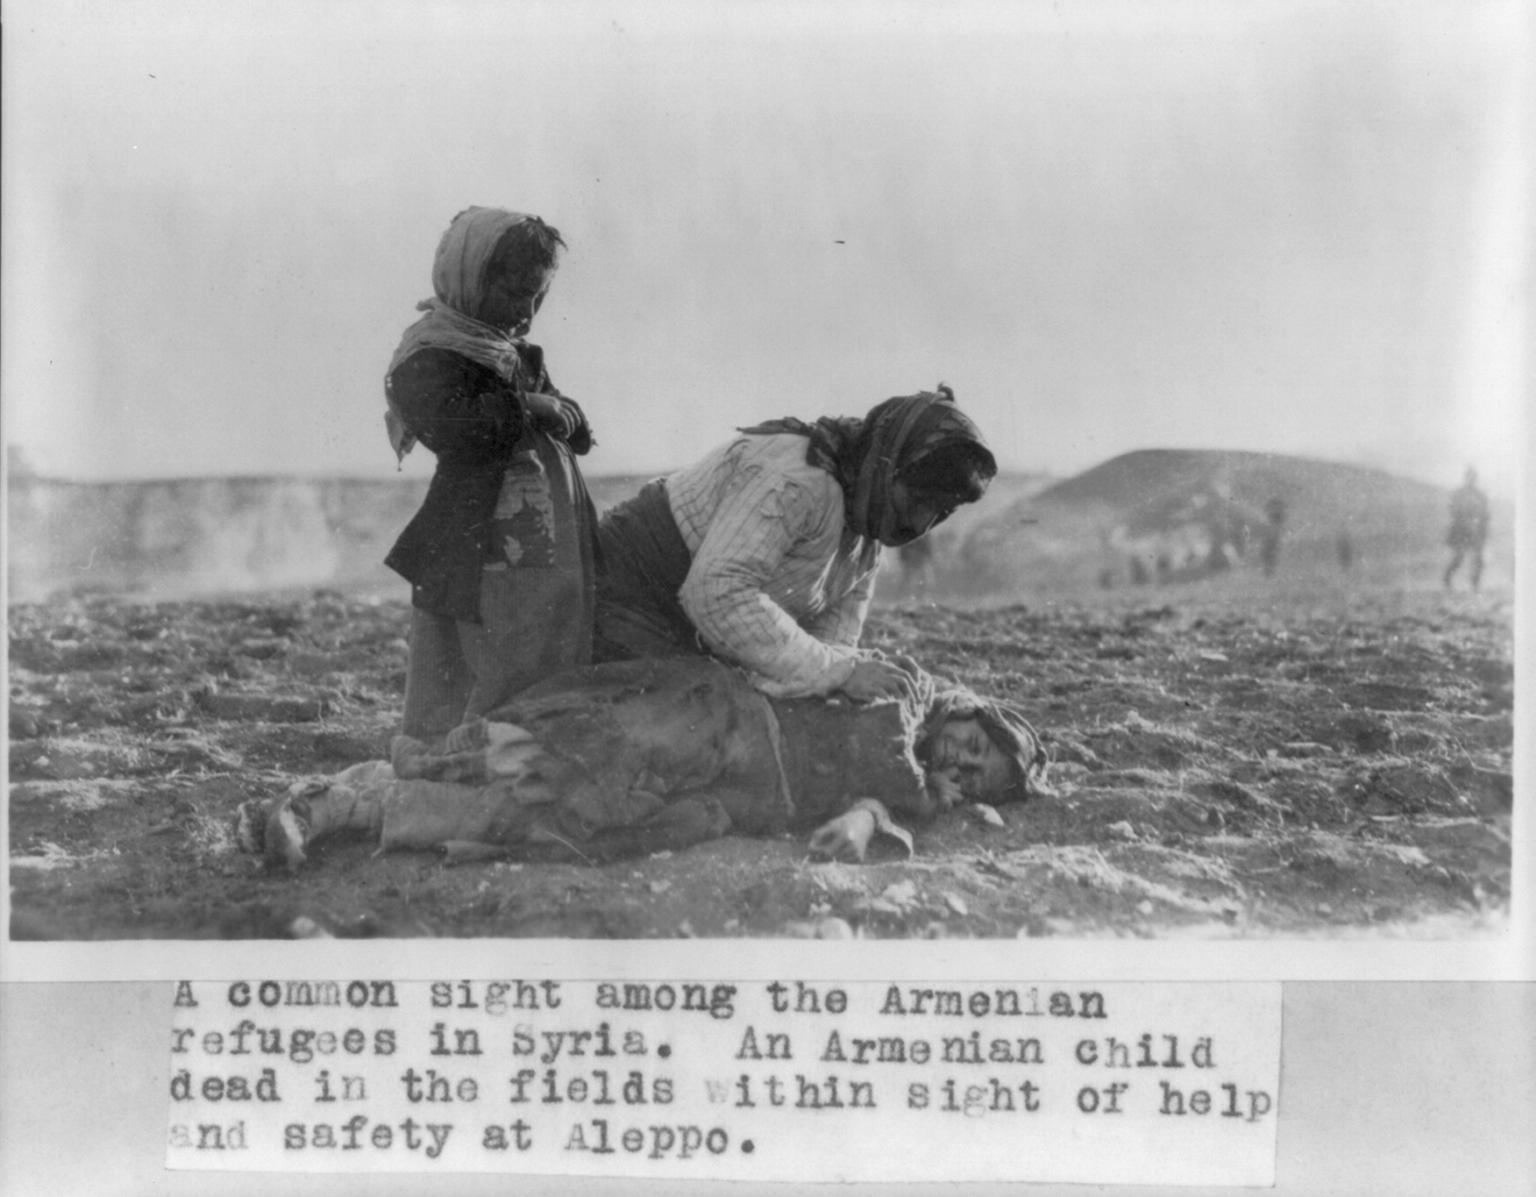 File:Dead Armenian girl in Aleppo desert.jpg